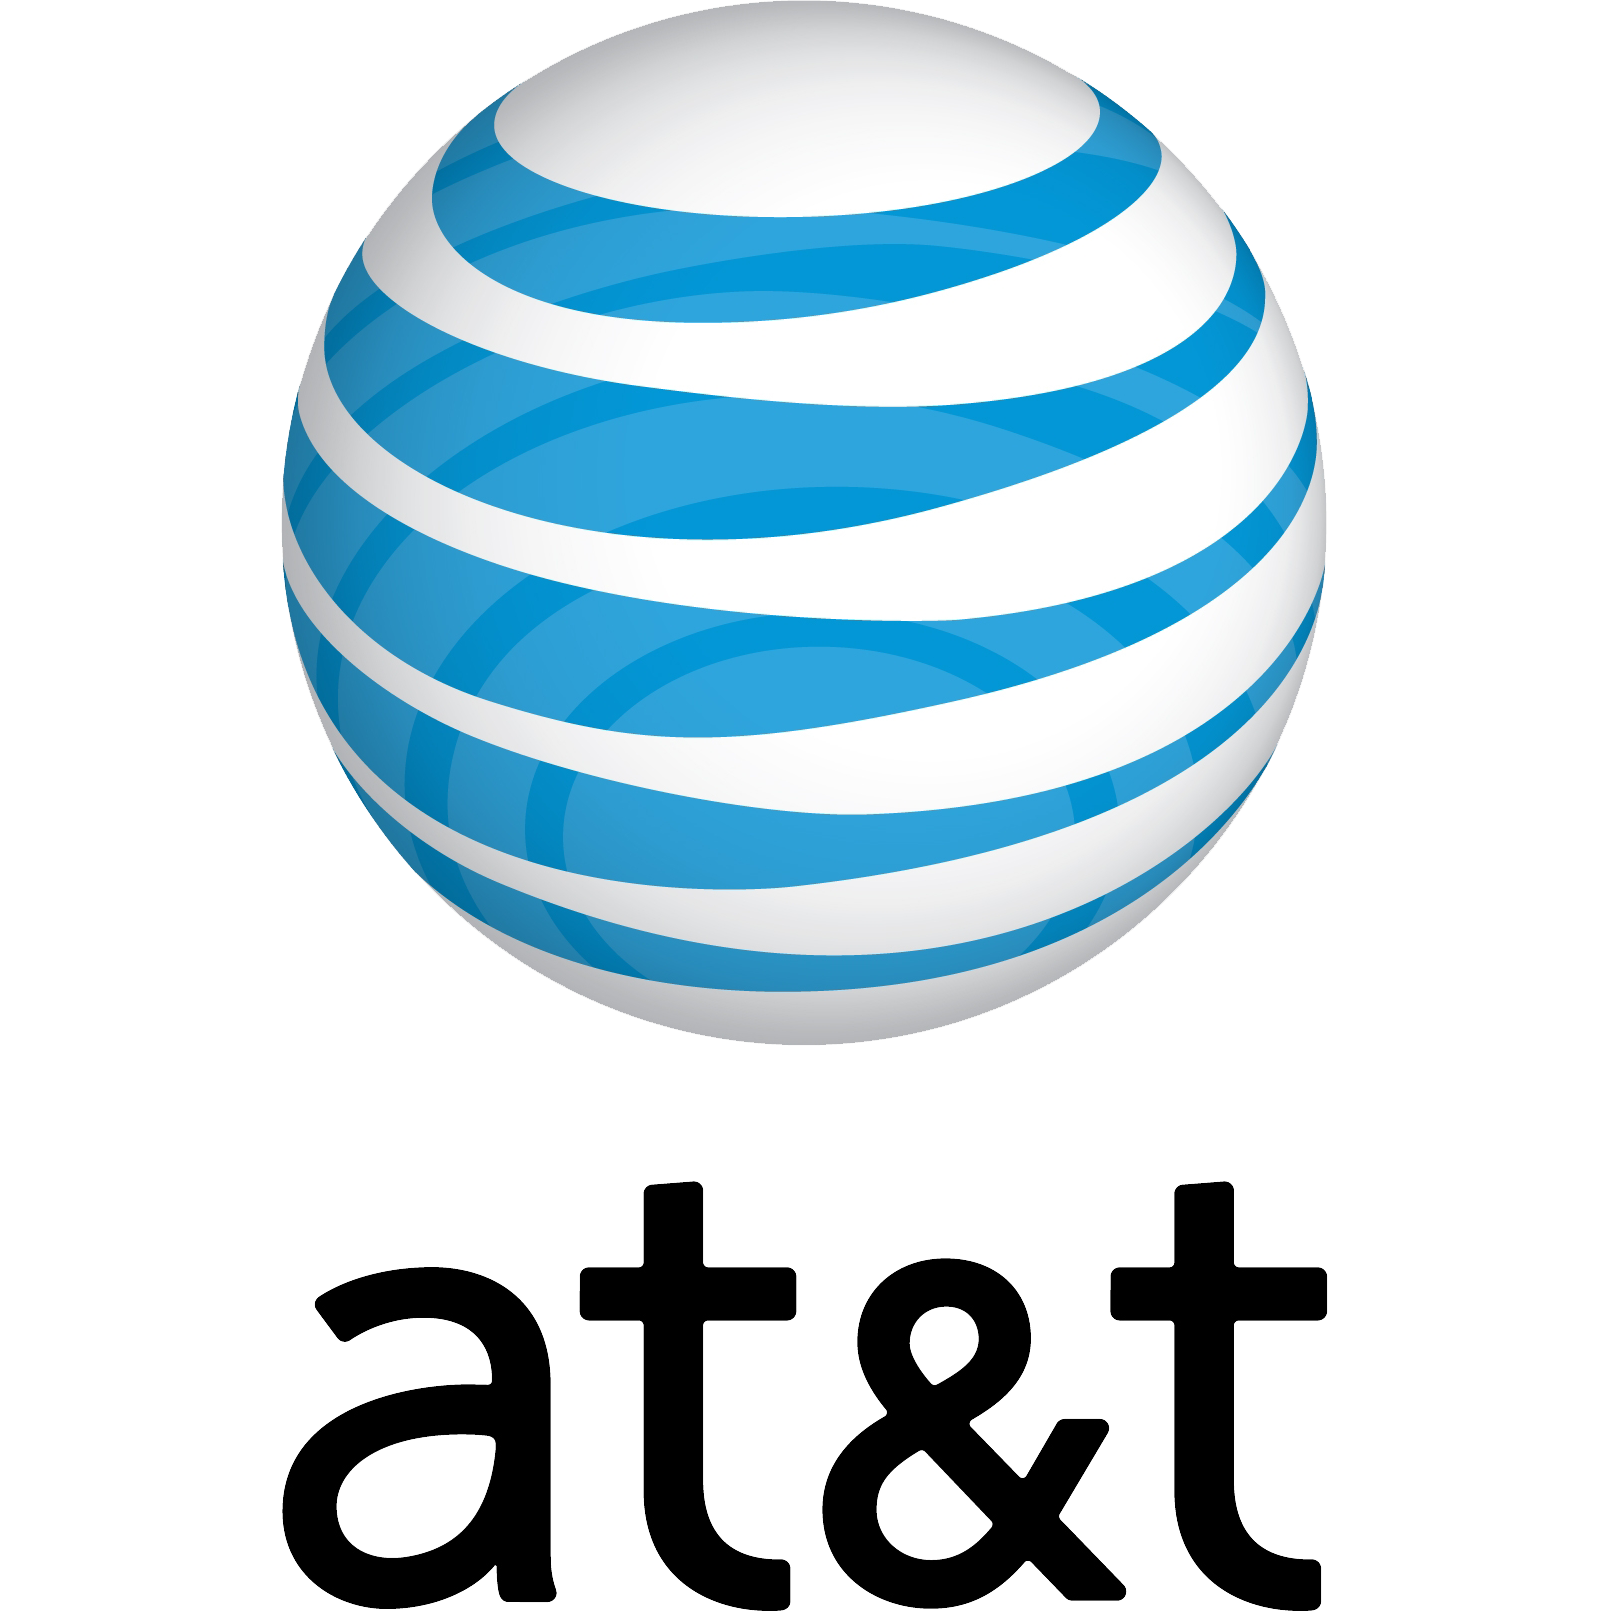 AT&T Aims to Implement 3G/4G in Your Next Ride